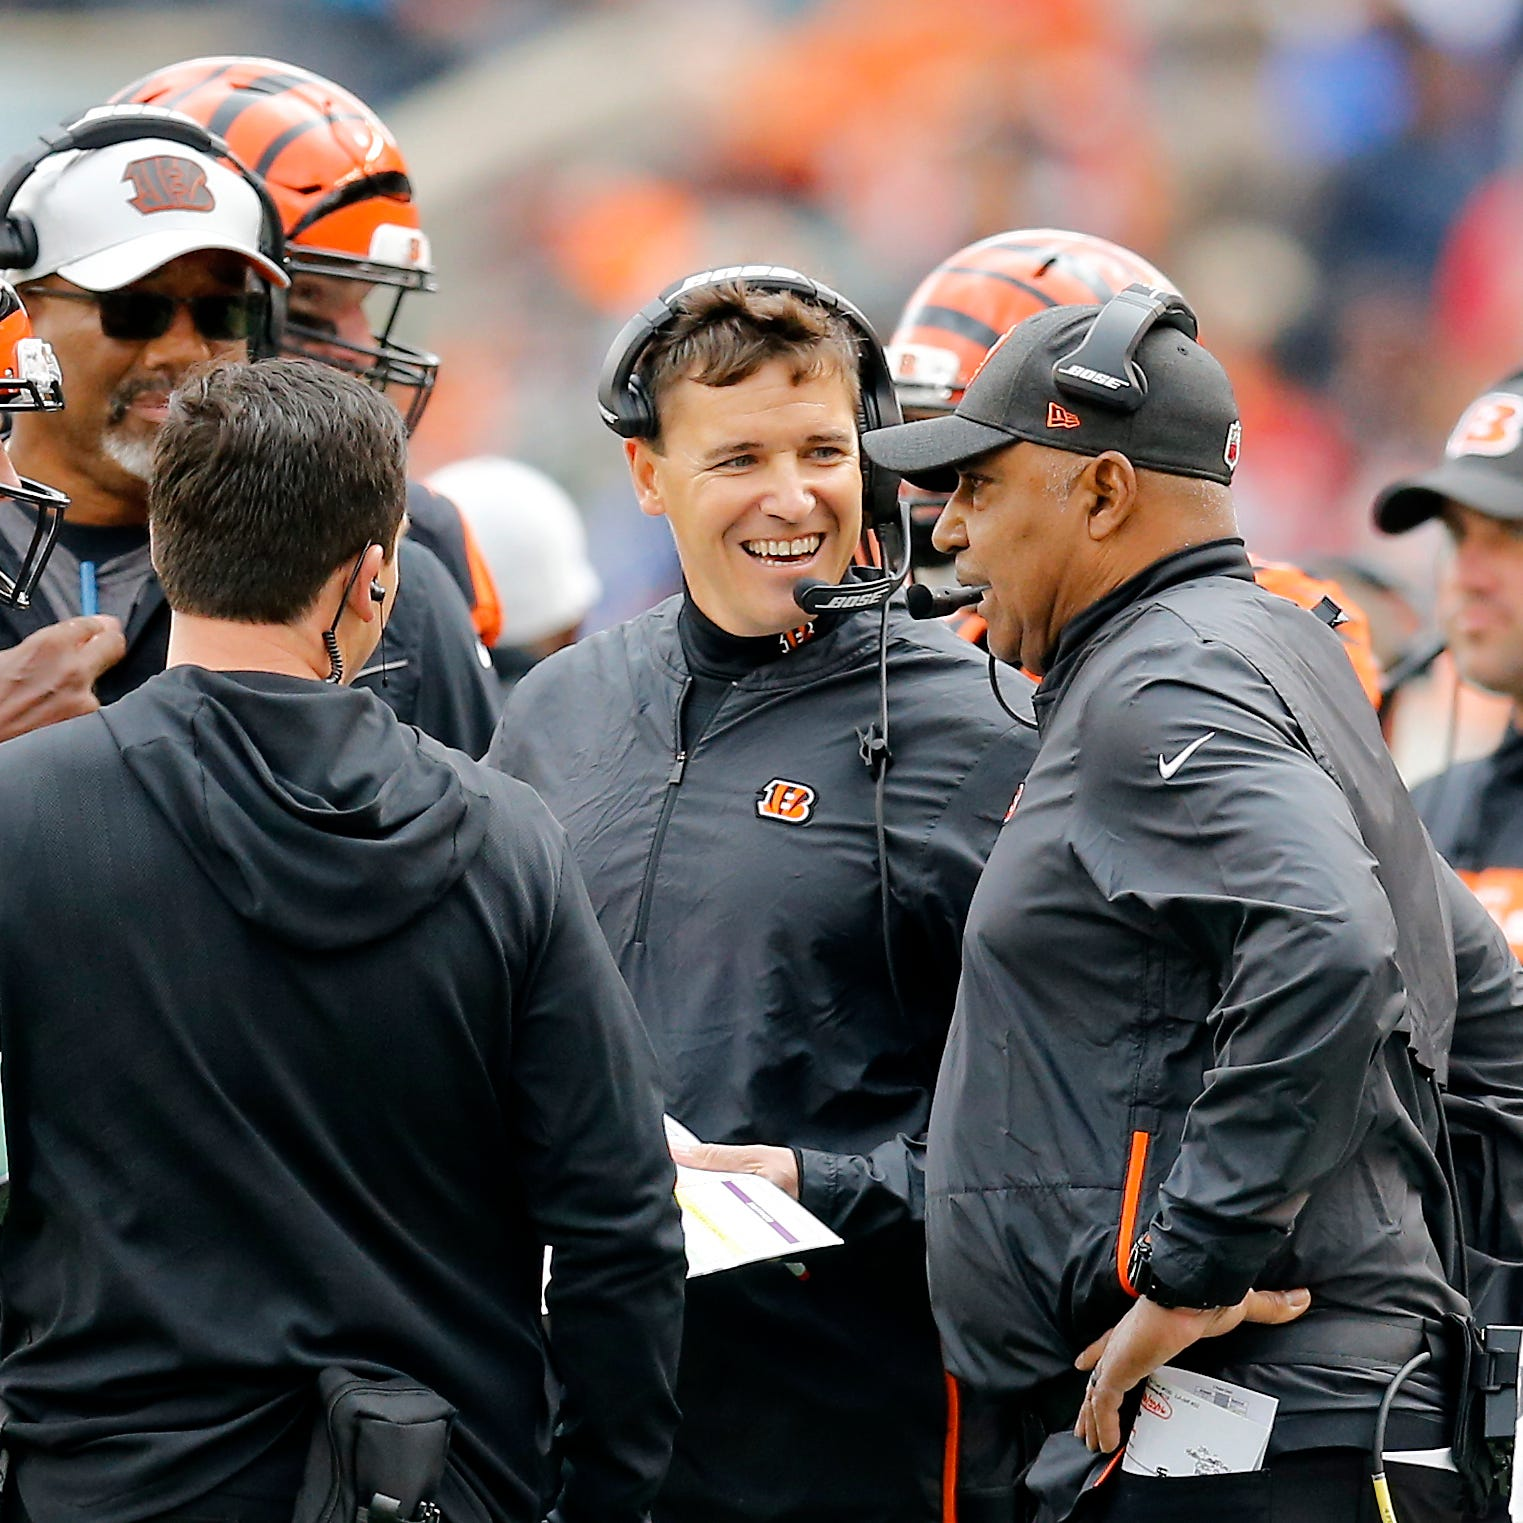 Can the Cincinnati Bengals' coaching staff control the chaos in Baltimore?